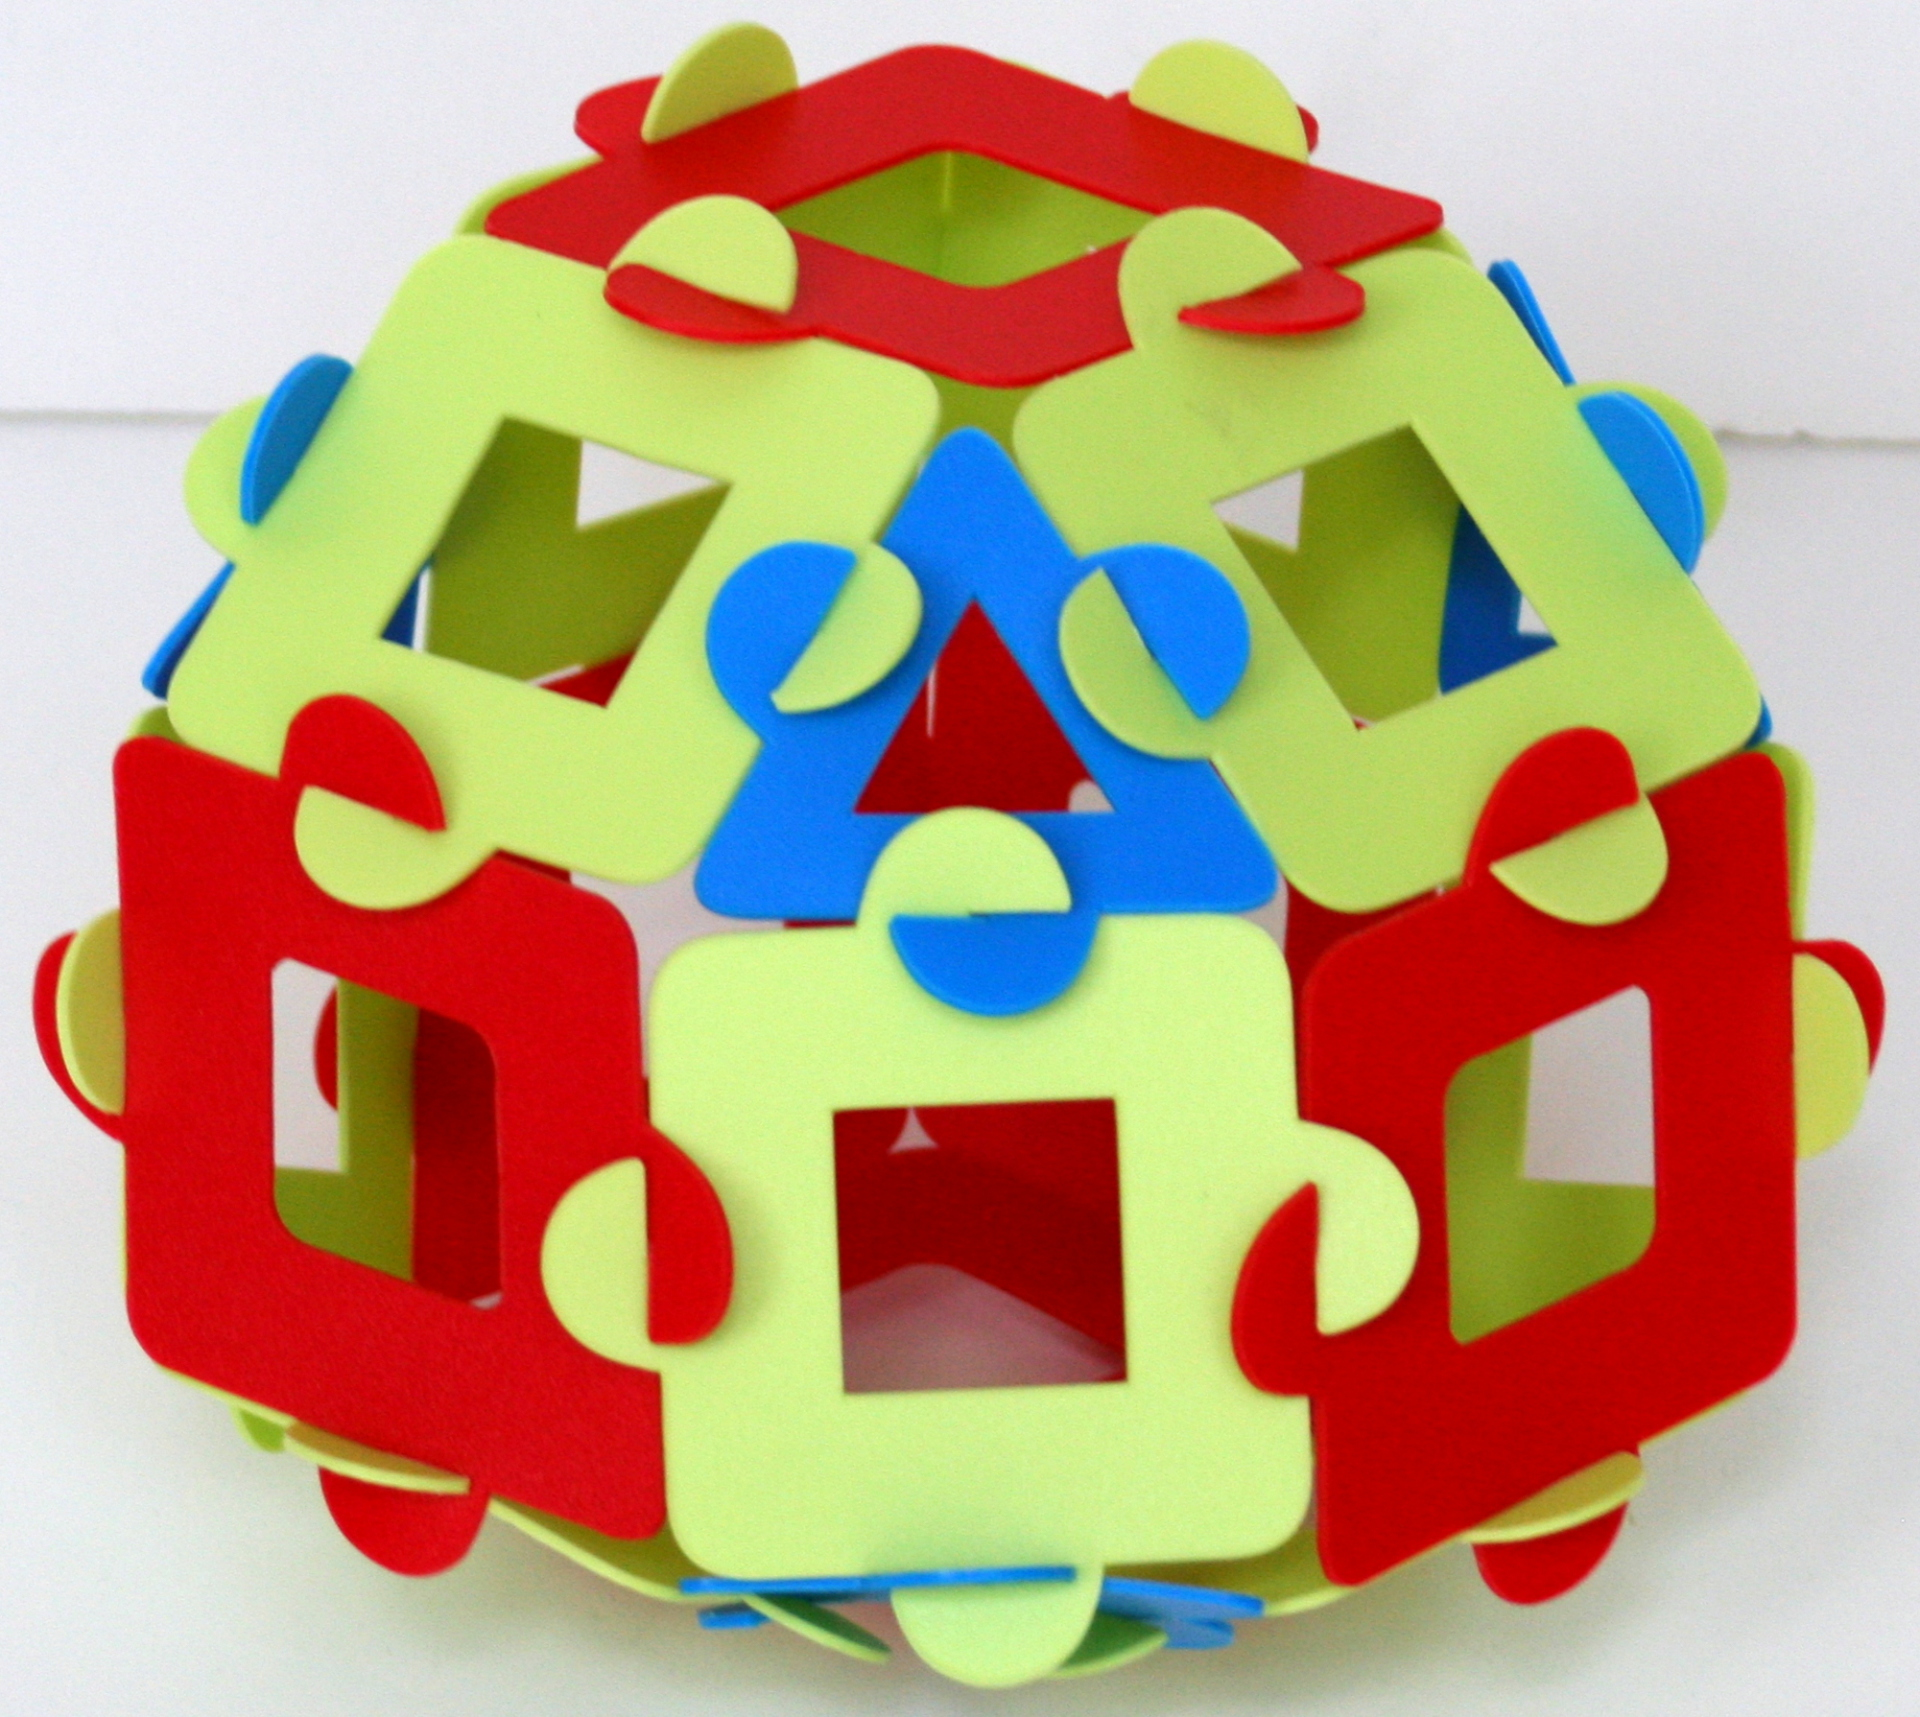 Twice reduced expanded rhombic dodecahedron